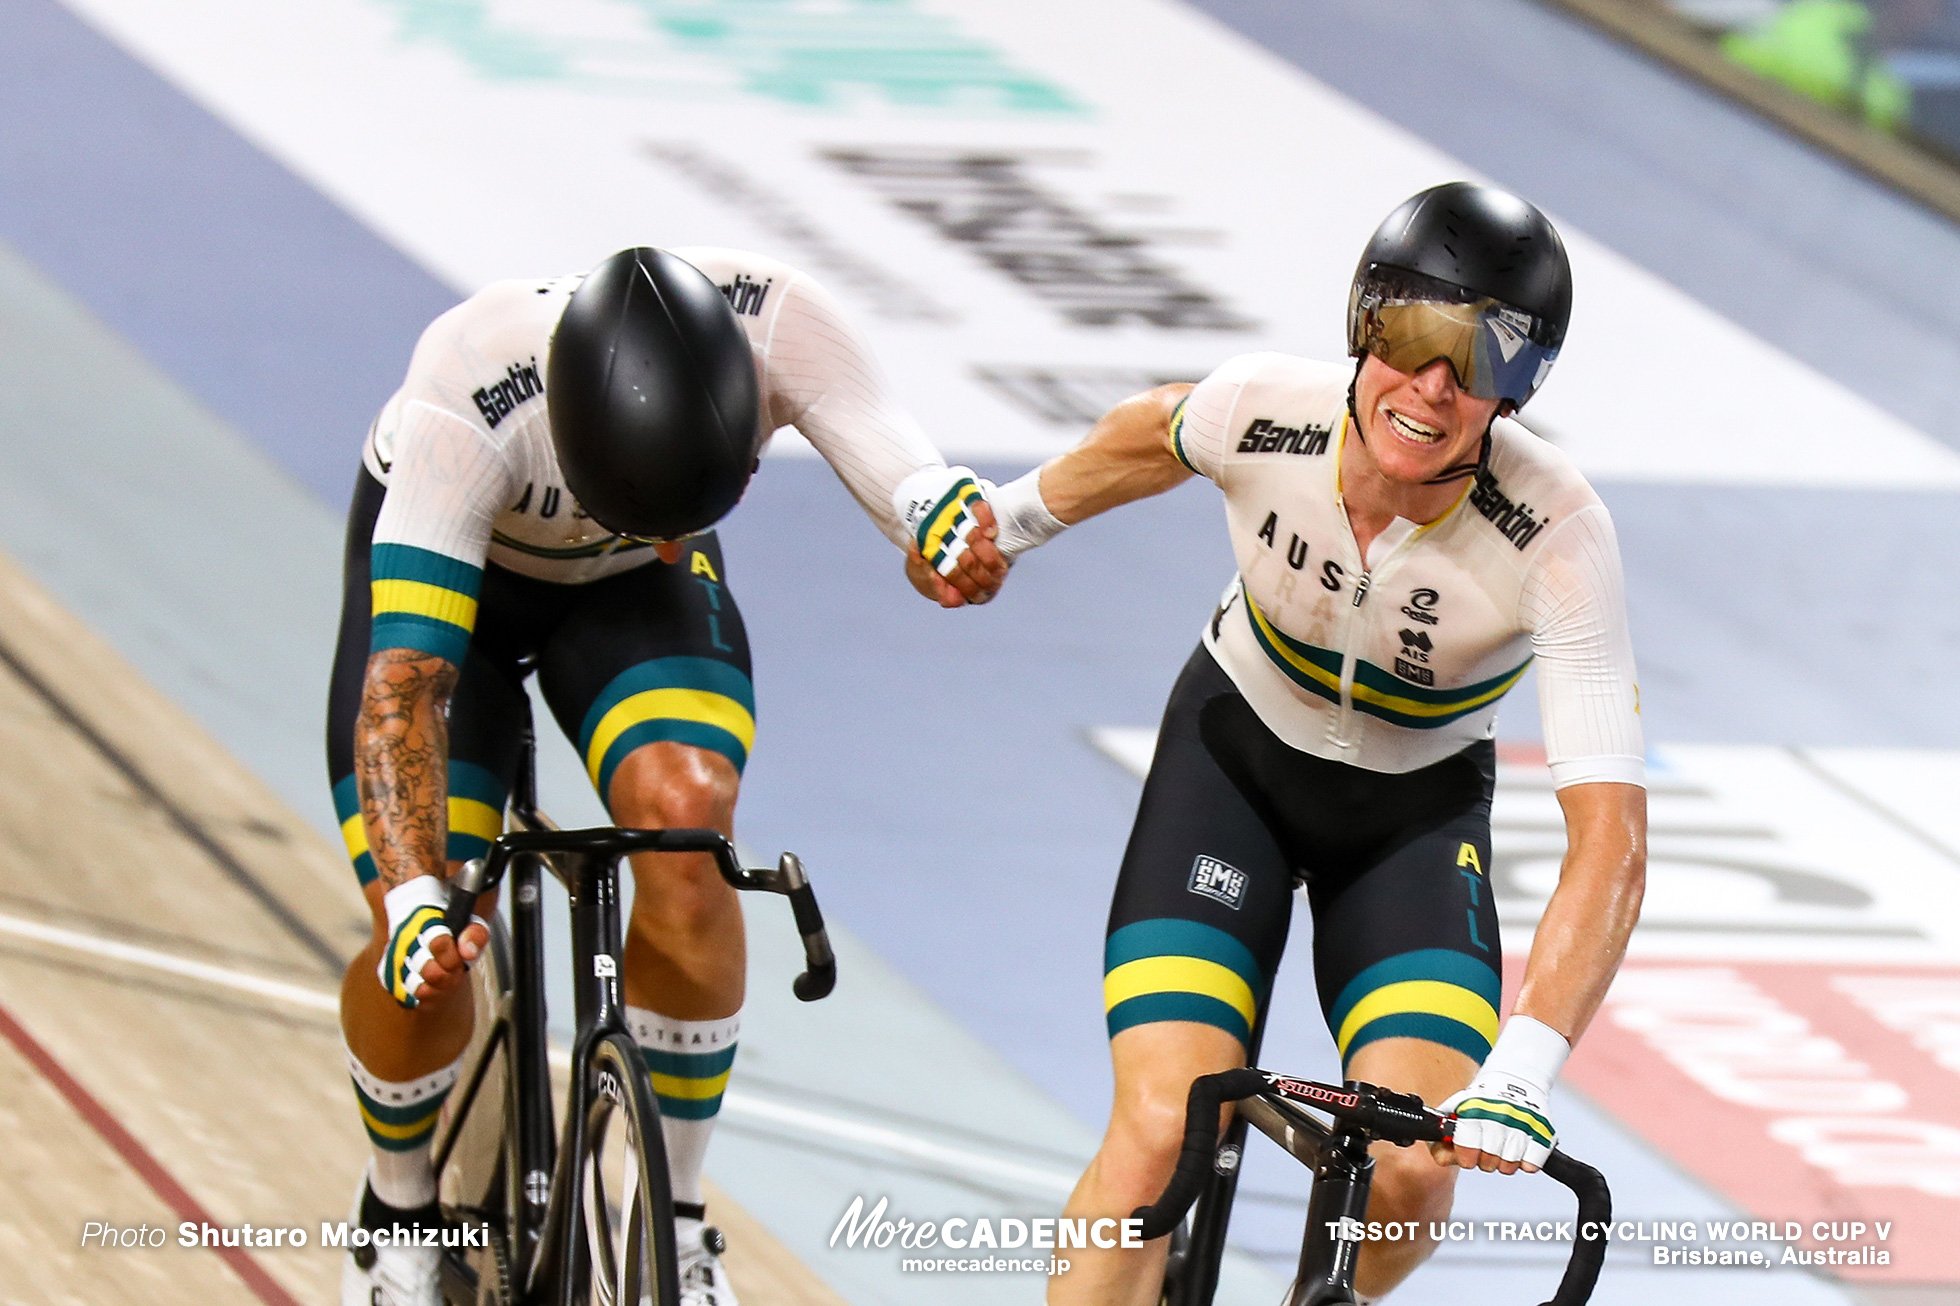 Men's Madison / TISSOT UCI TRACK CYCLING WORLD CUP V, Brisbane, Australia, Sam WELSFORD サム・ウェルスフォード Cameron MEYER キャメロン・マイヤー